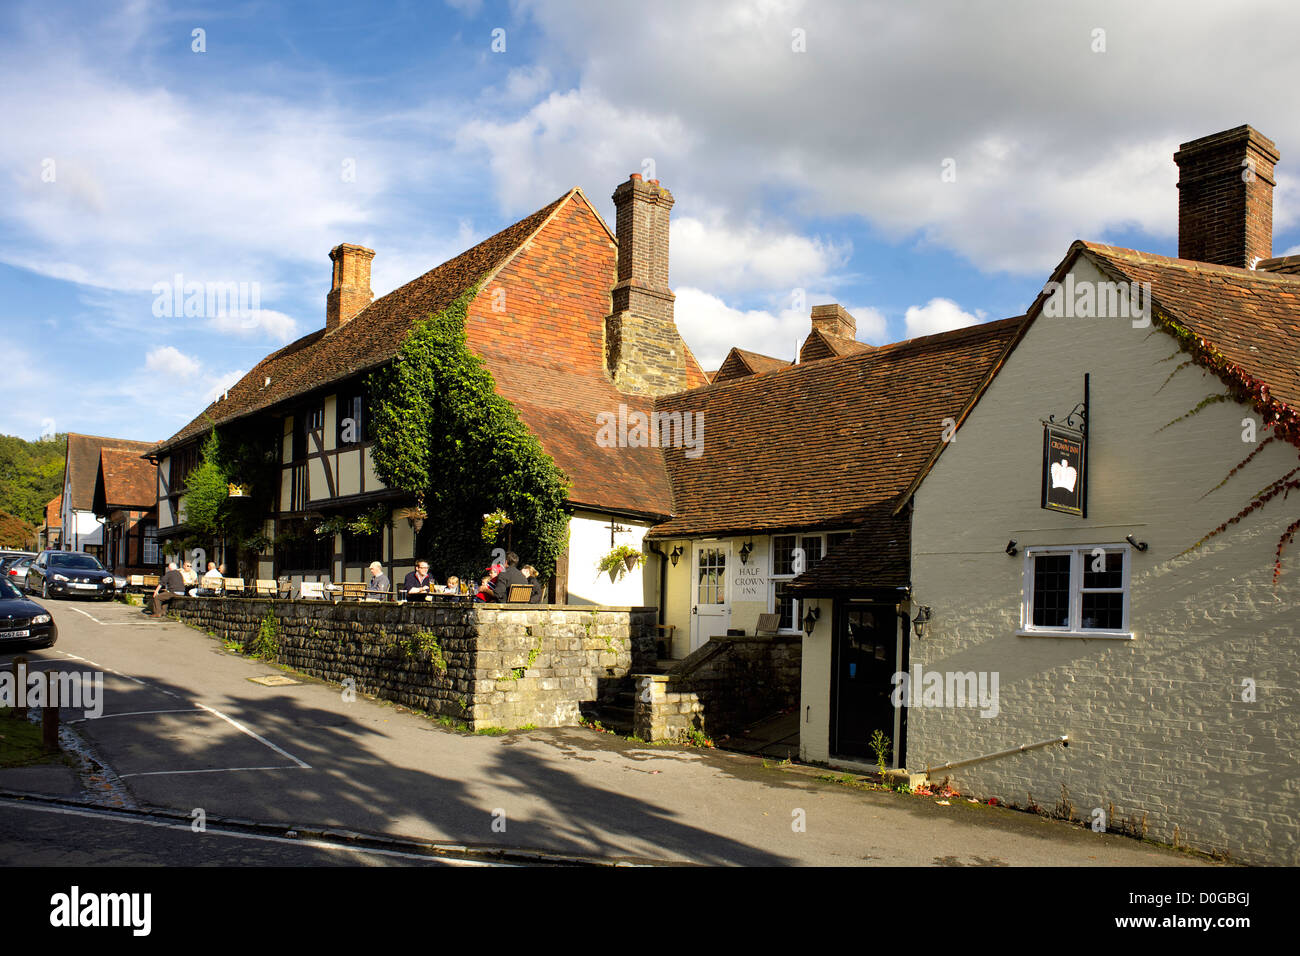 The crown inn chiddingfold surrey england uk gb rural england the crown inn chiddingfold surrey england uk gb rural england english great britain british countryside village country pub life sciox Image collections